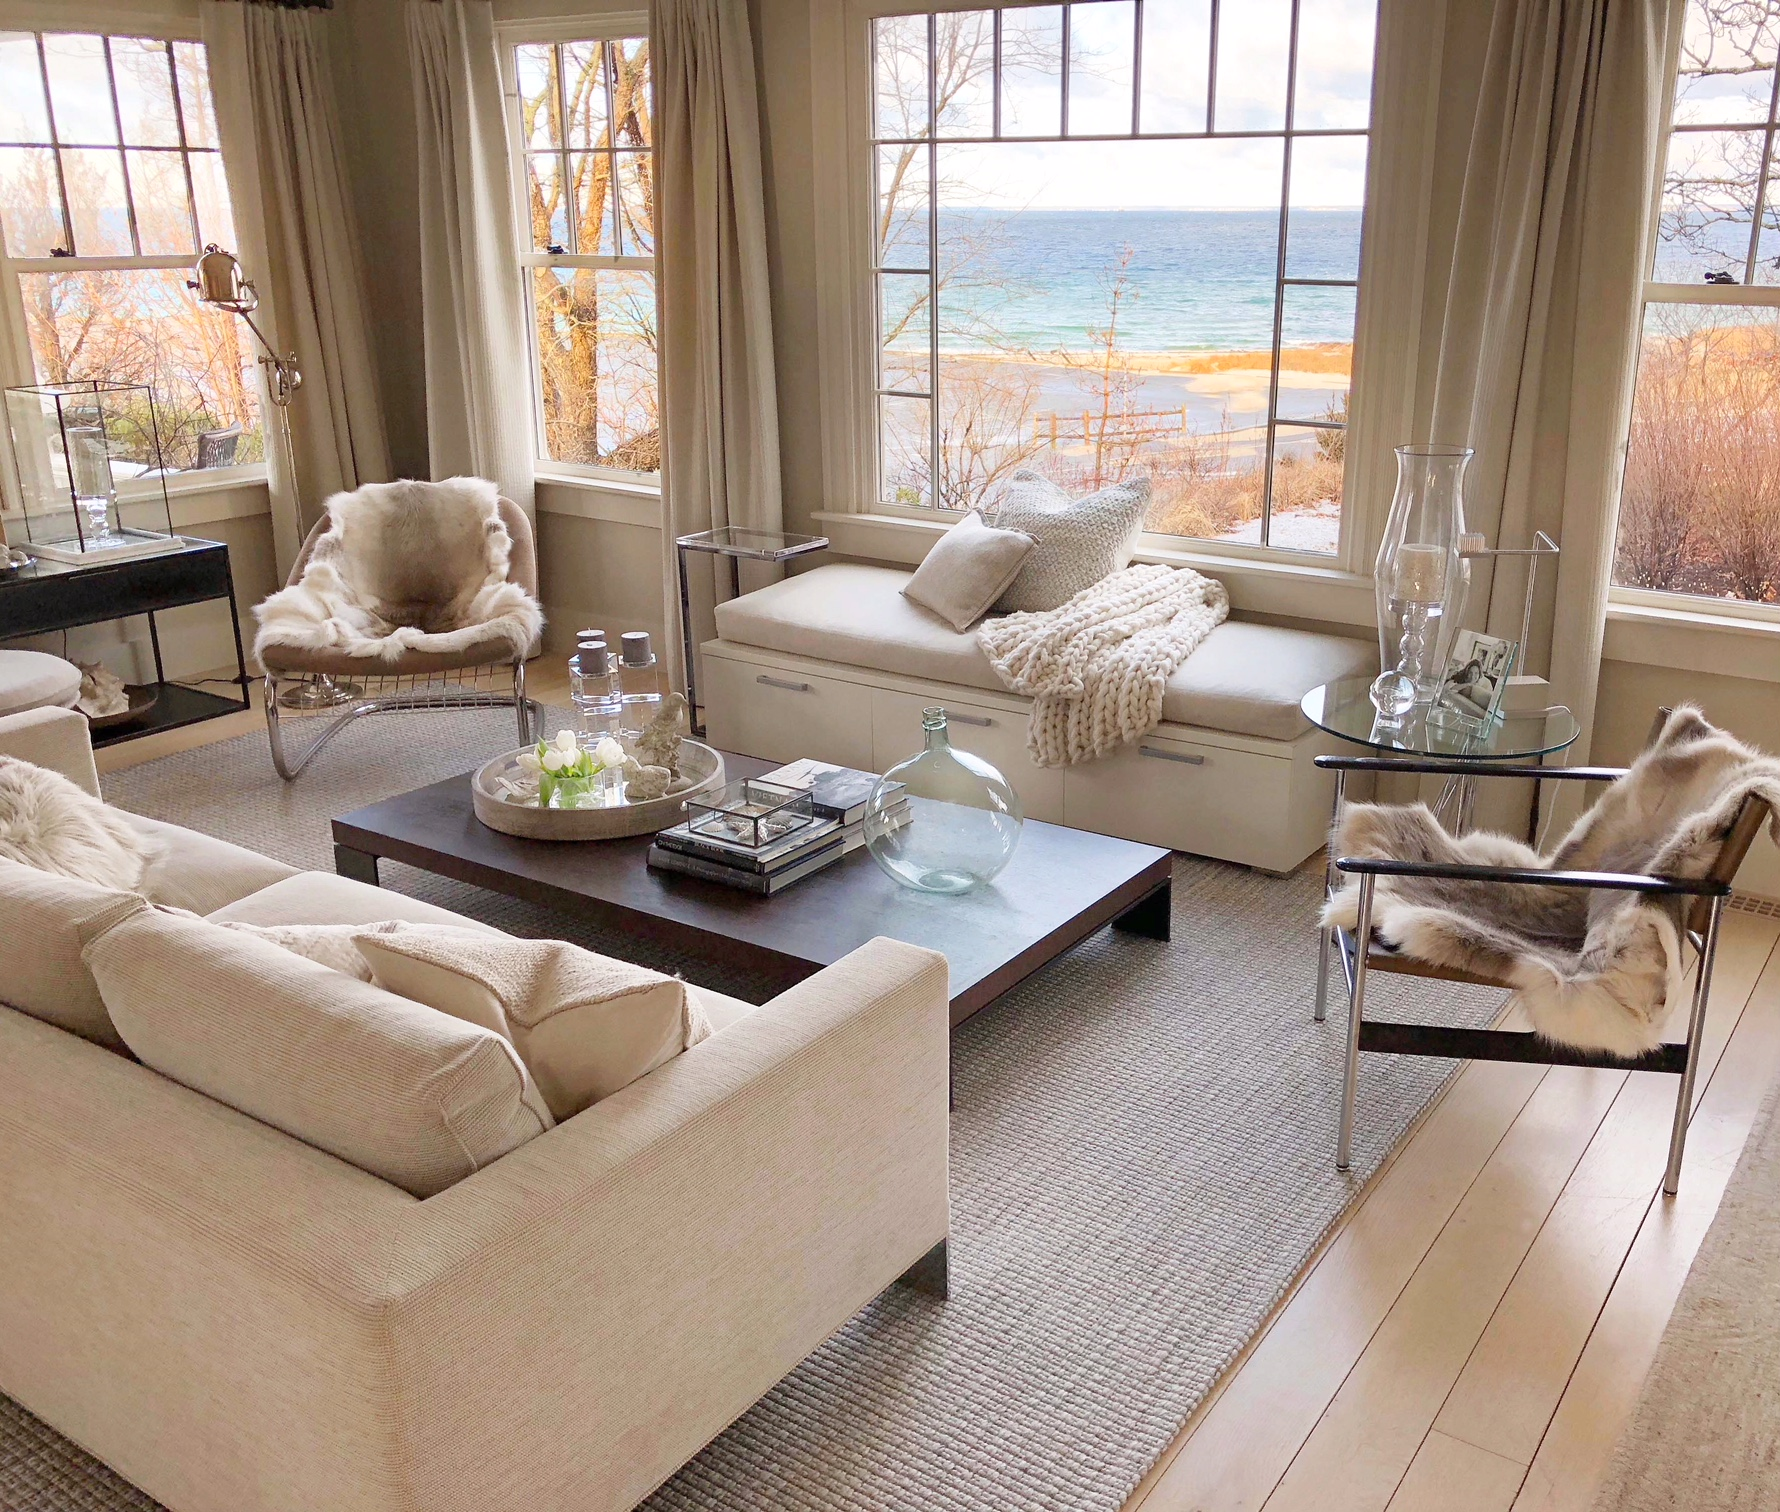 Neutral New England beach cottage living room with a vintage-modern mix. Design by Sandra Cavallo, @oldsilvershed